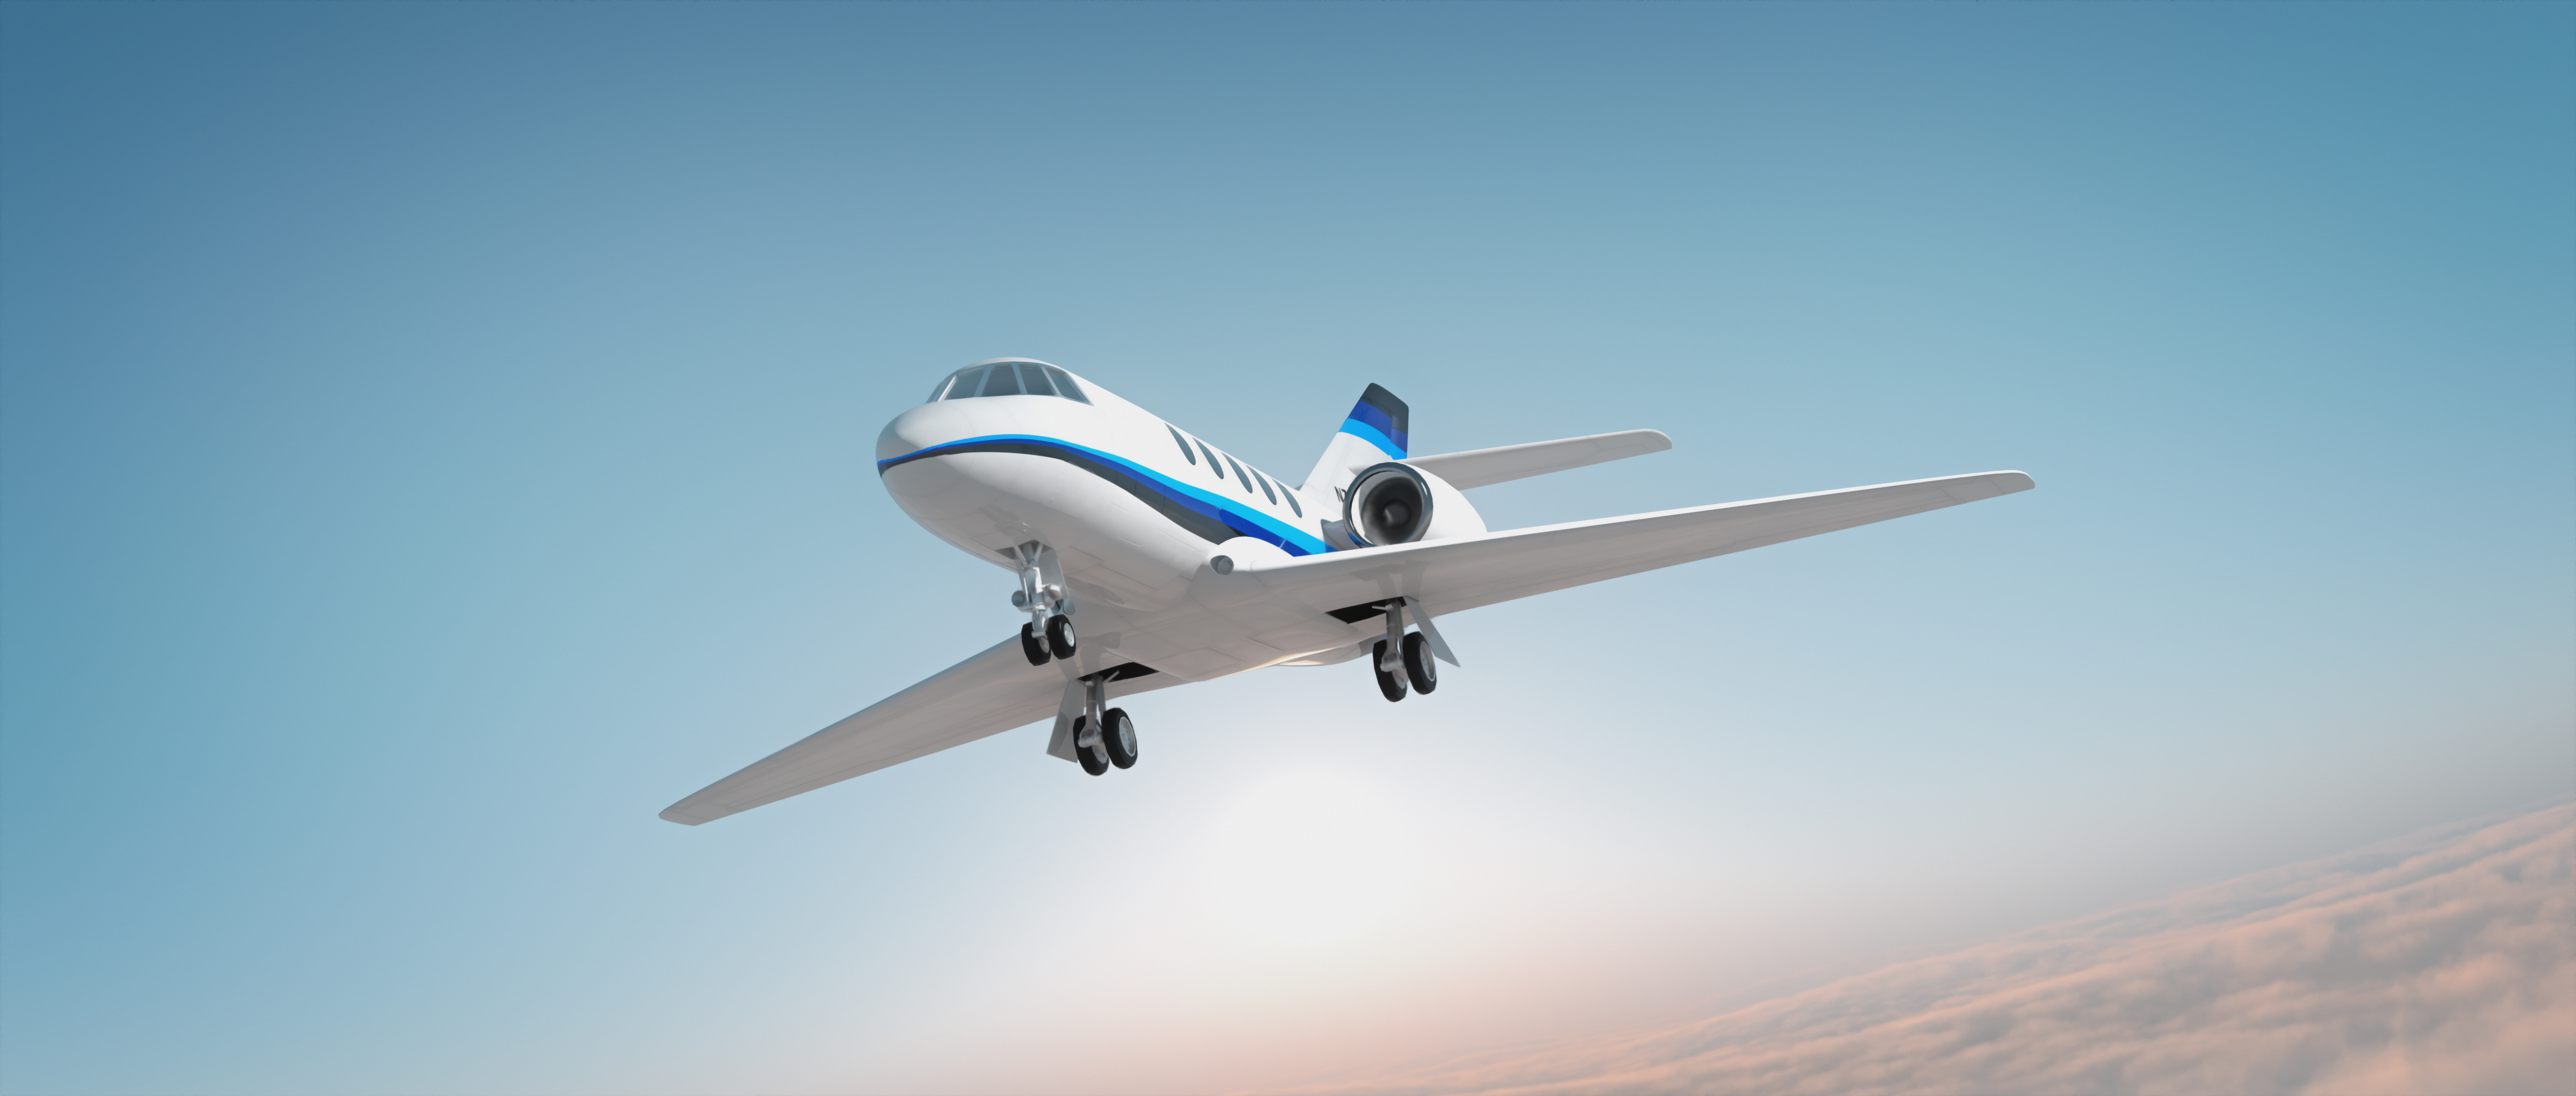 How Fast Do Private Jets Travel? - Presidential Aviation